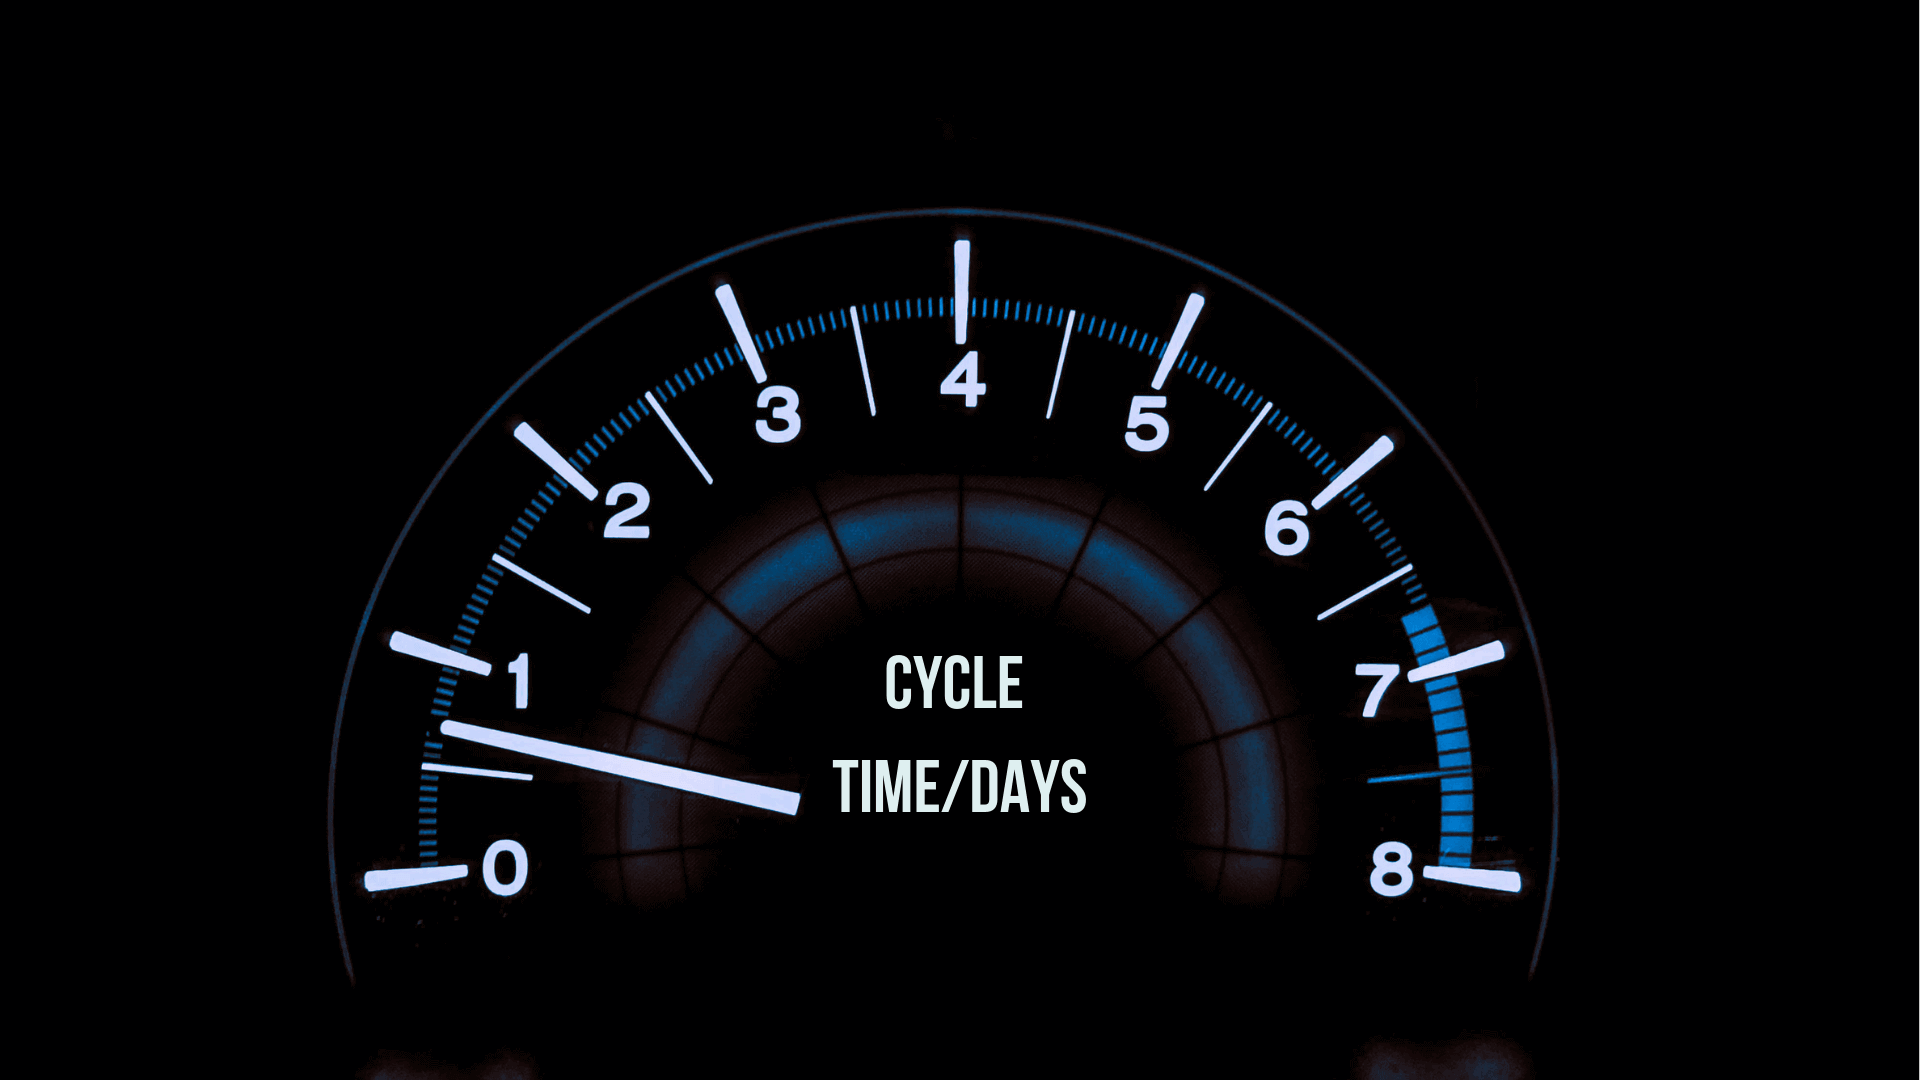 cycle time is an indicator for efficiency